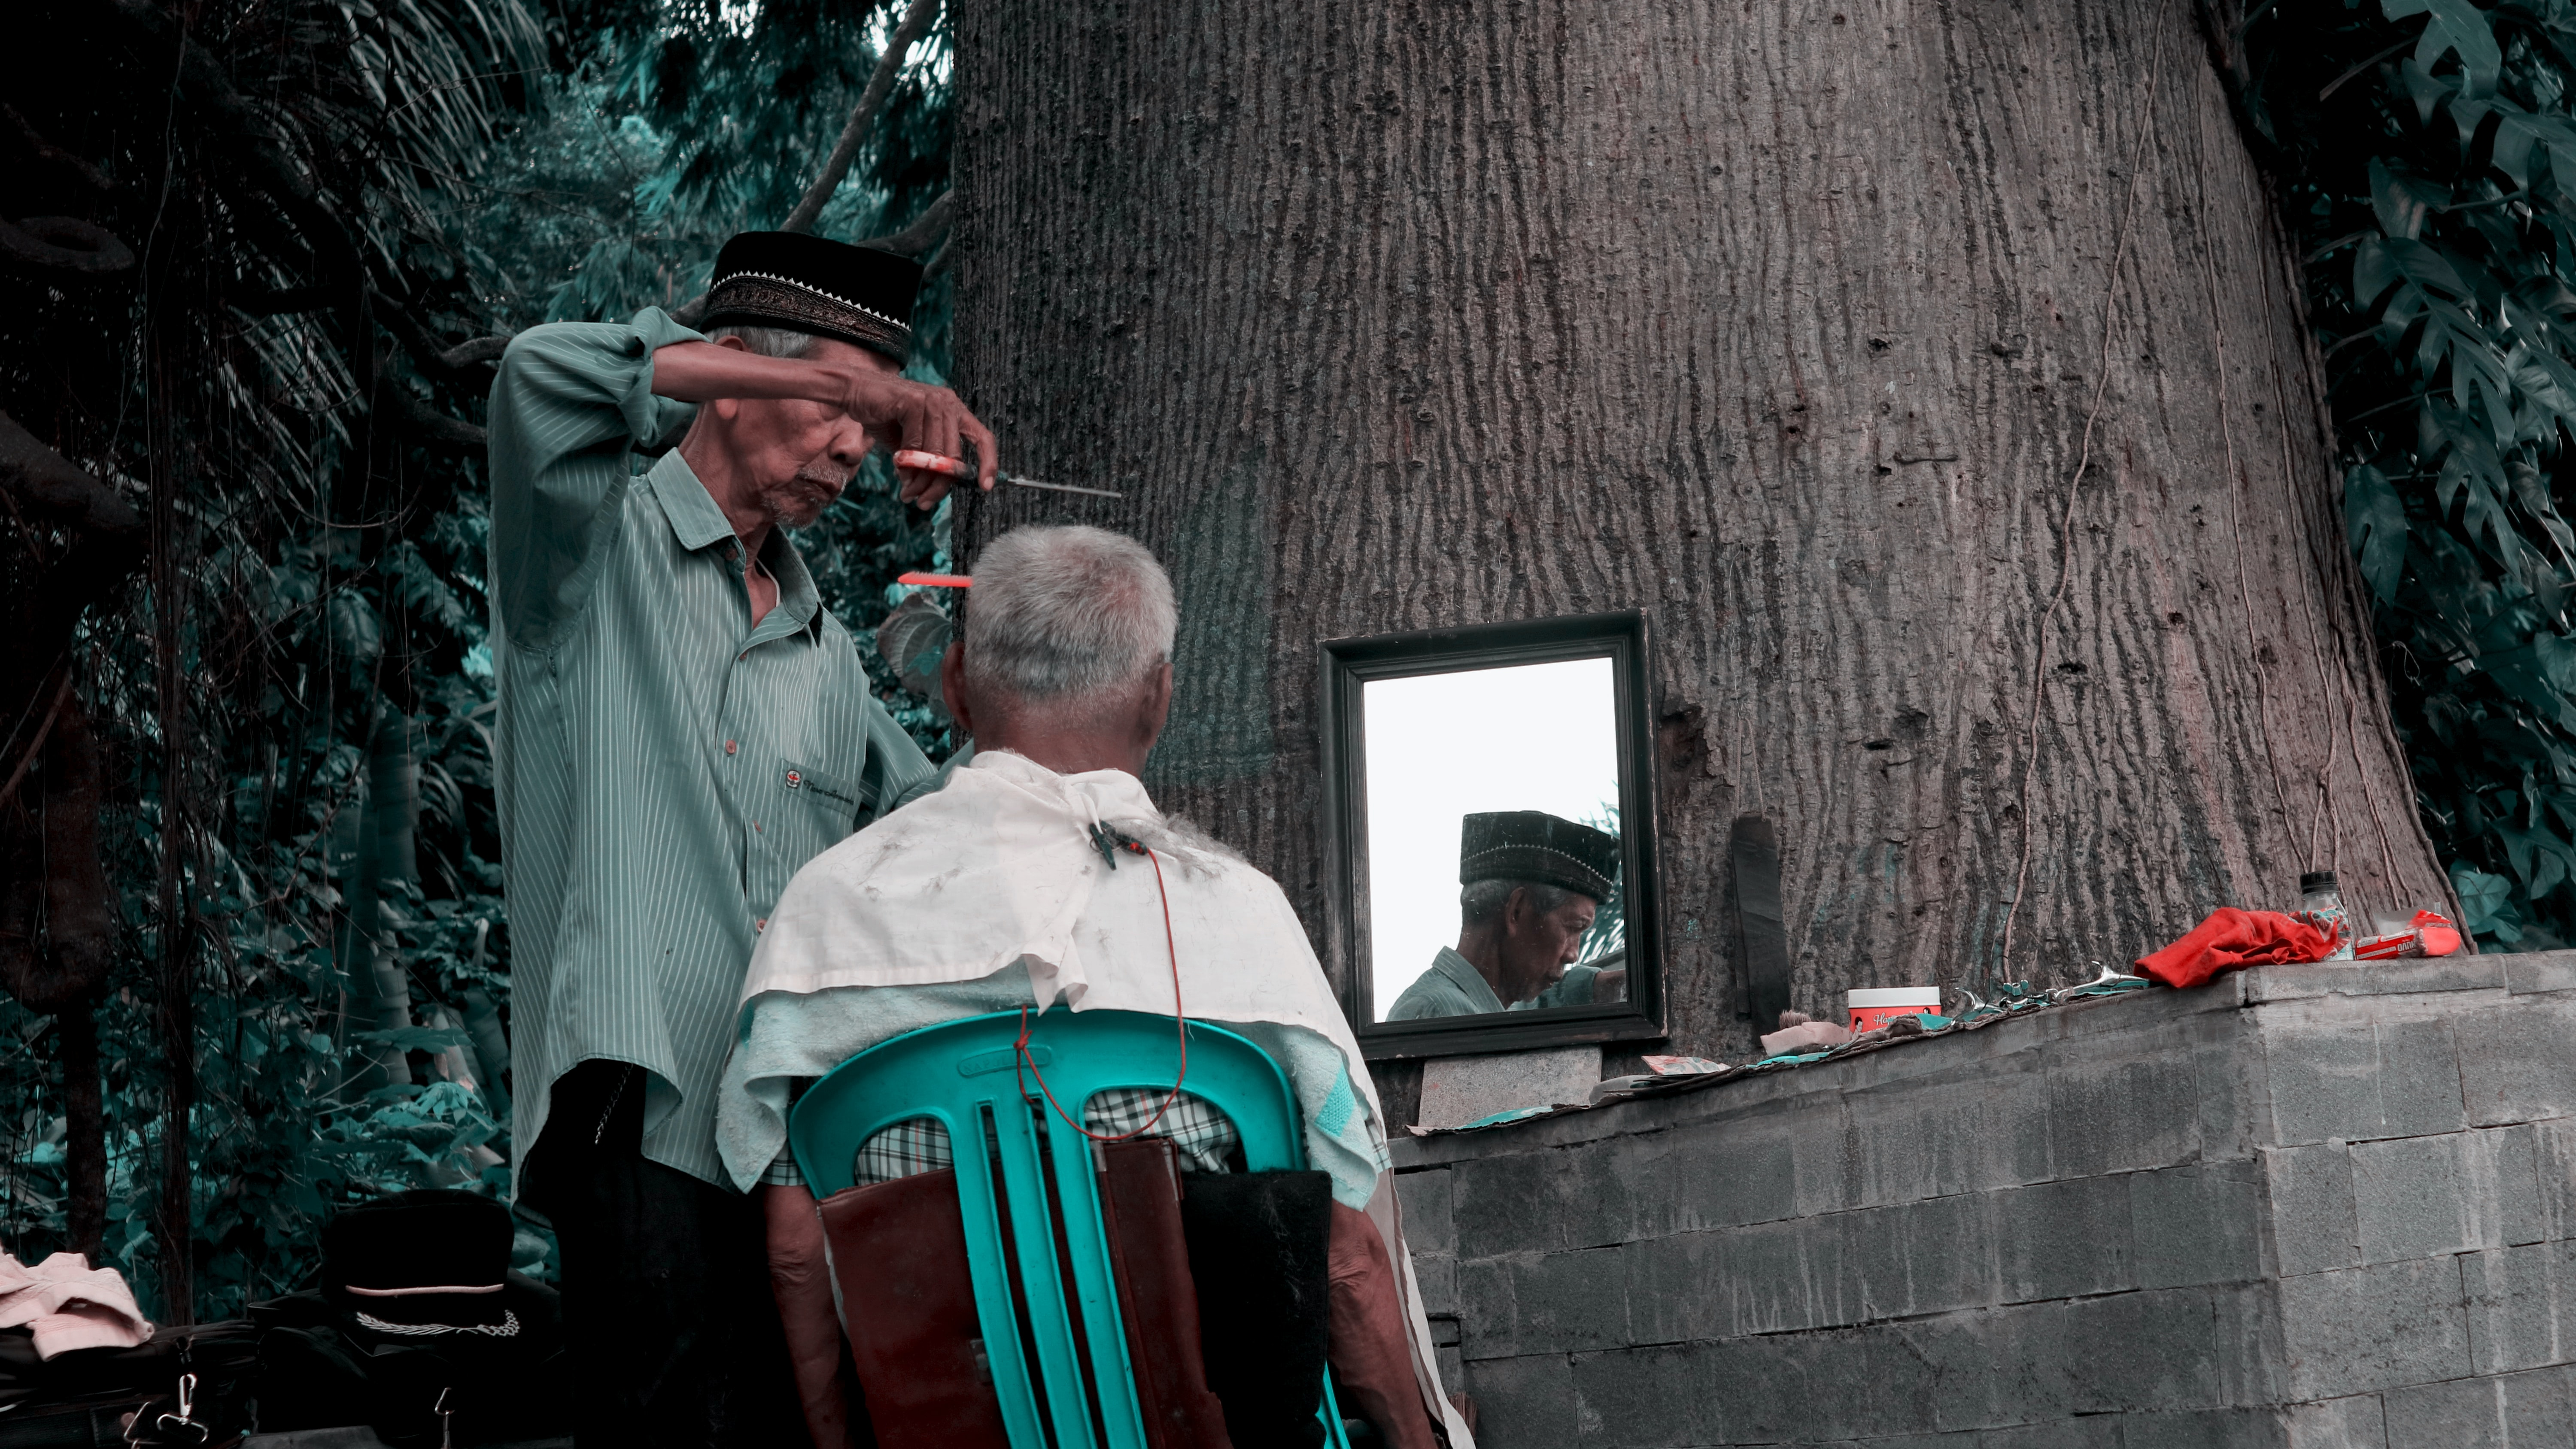 man sitting on green chair facing mirror while the other man standing cutting's man hair at daytime